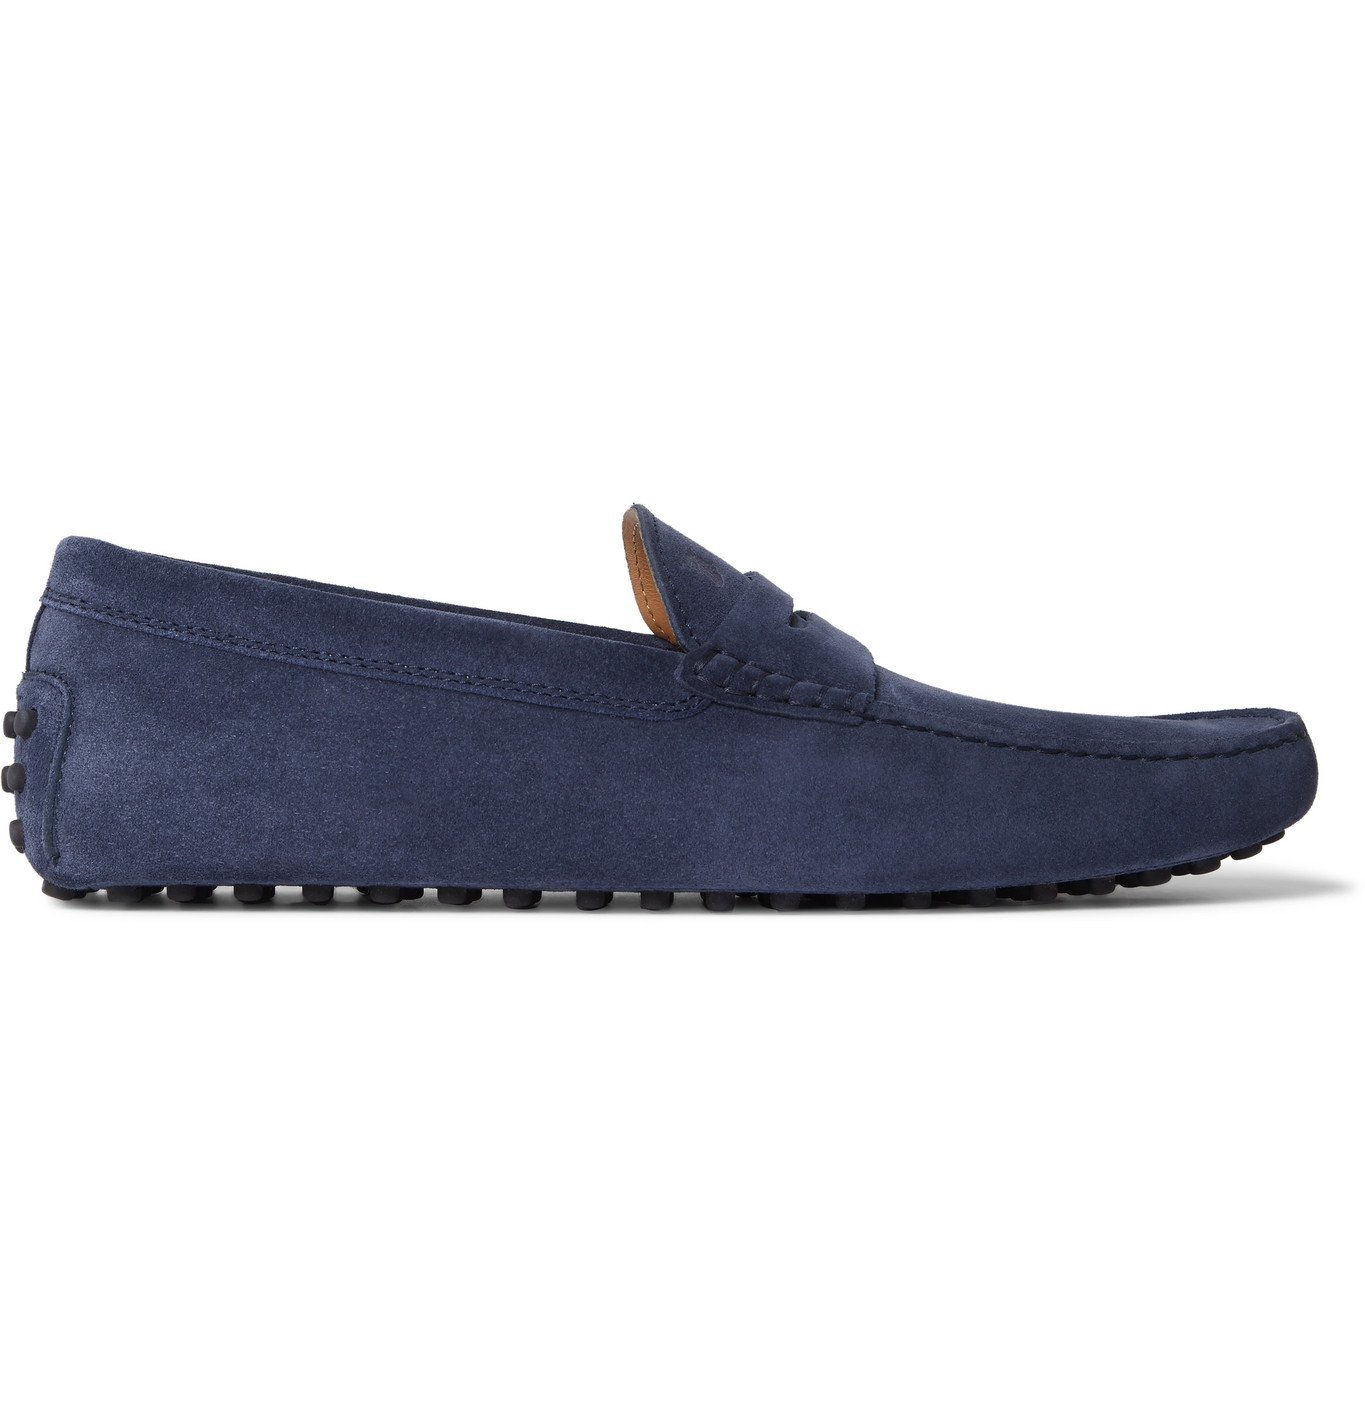 Tod's - Gommino Suede Driving Shoes - Blue